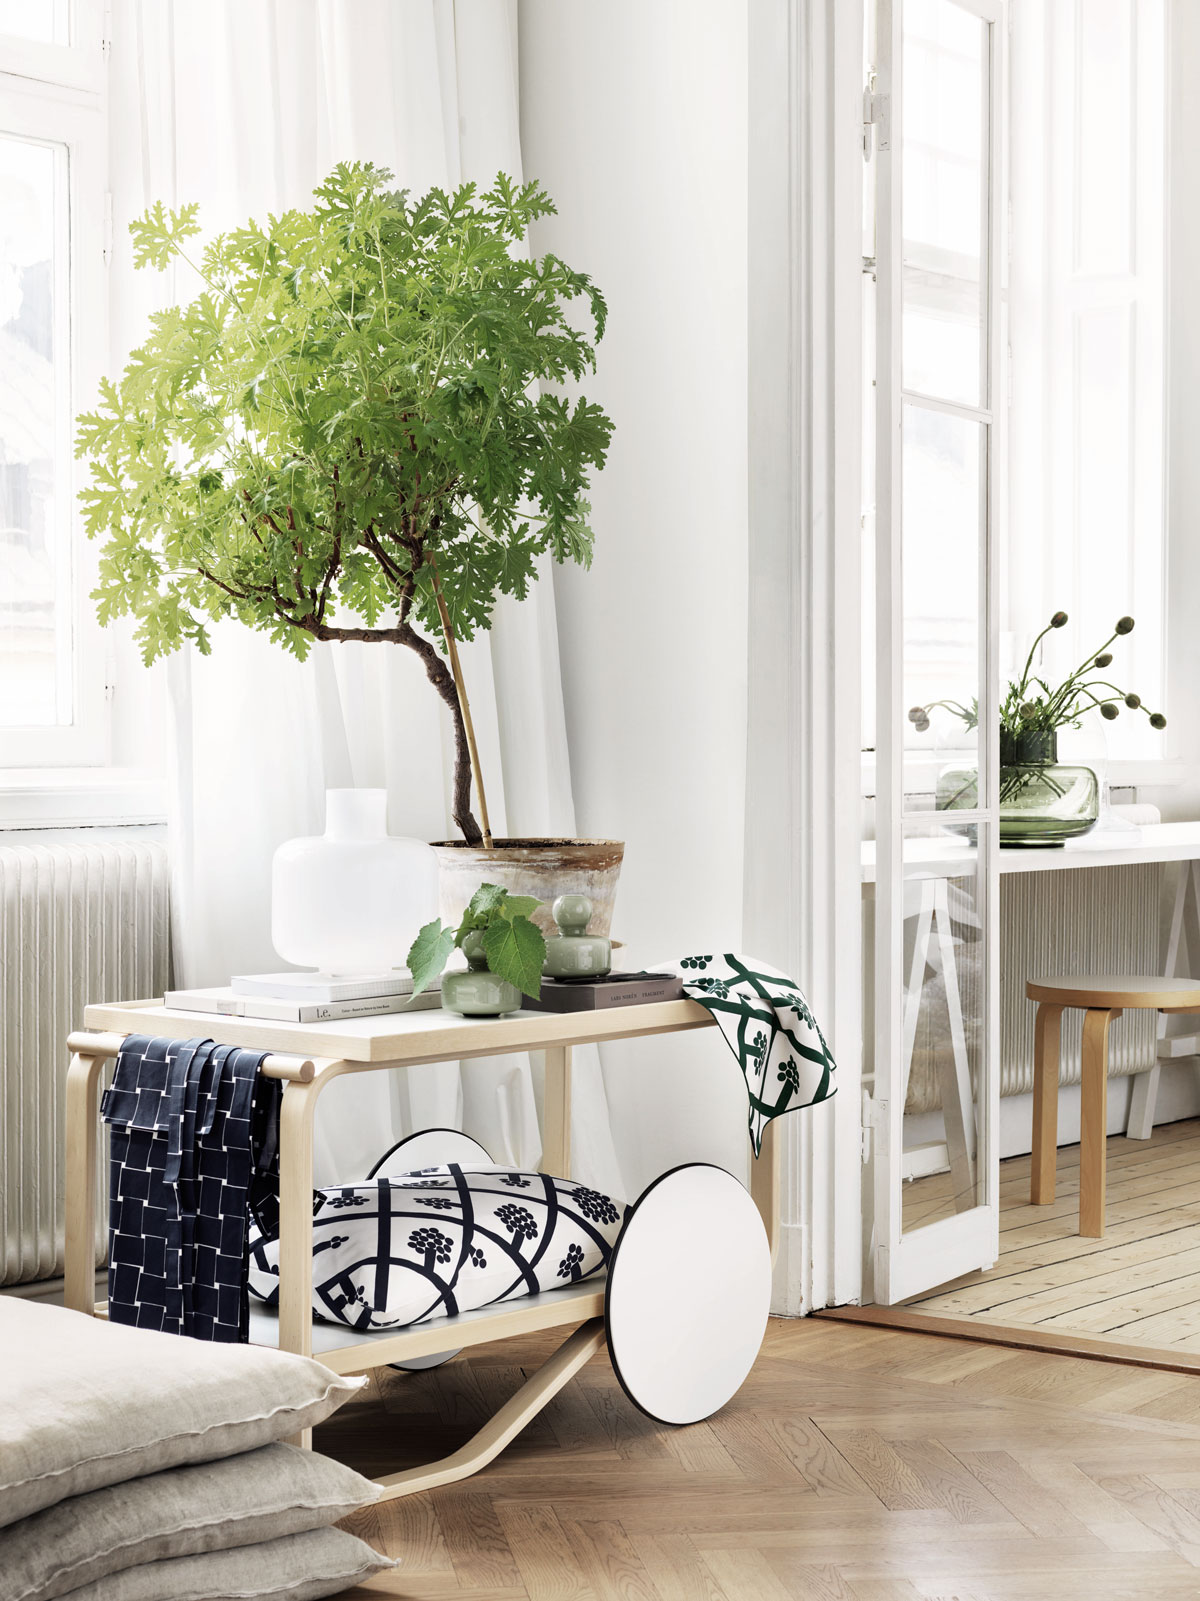 - In Feng Shui there is also always the question of balance. Too much green can be overpowering, so green foliage should also be balanced by white or beige colours, this will have a purifying and harmonising effect.